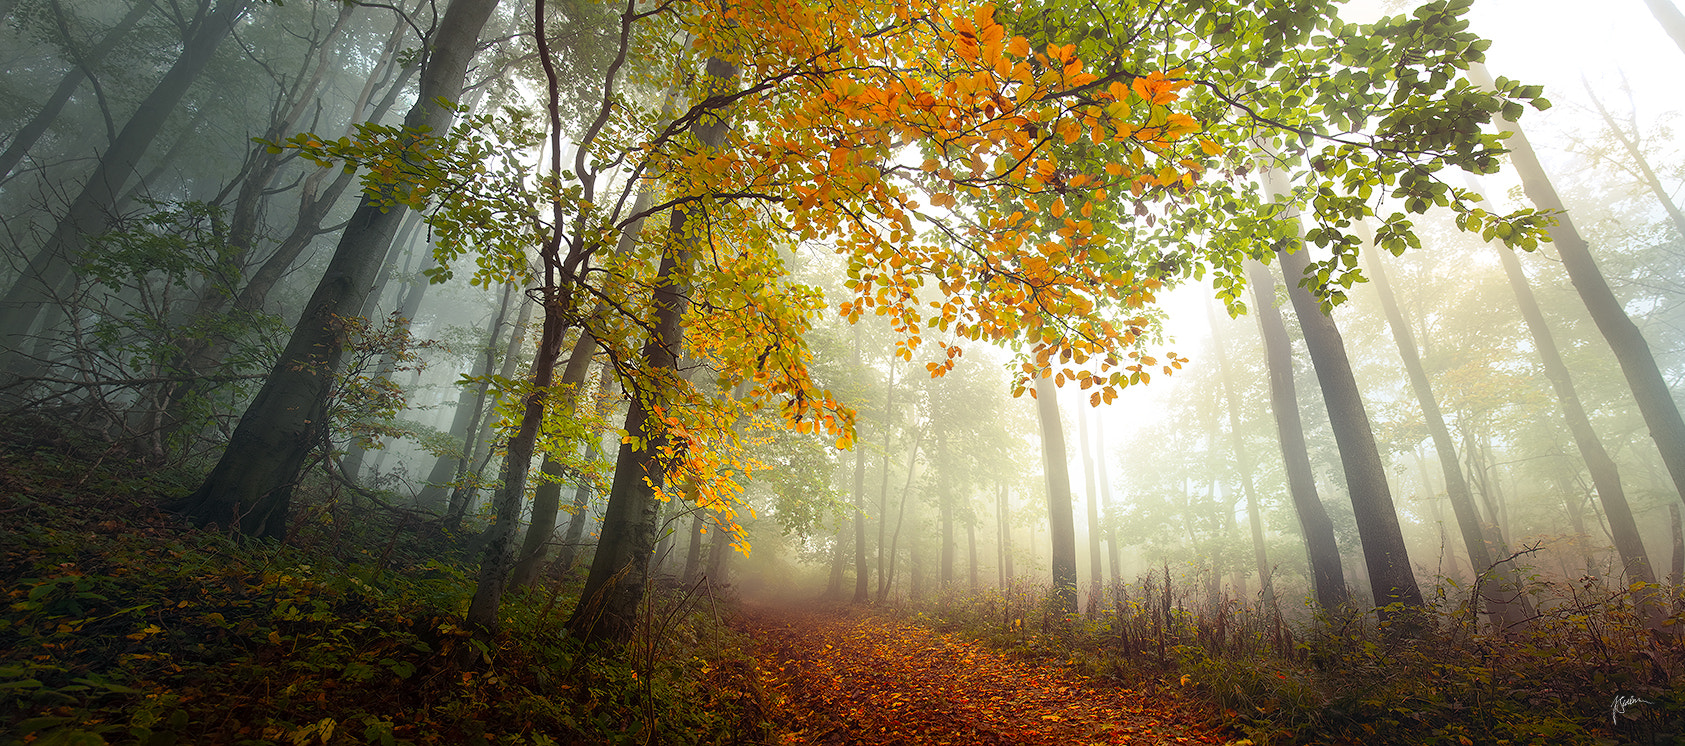 Photograph Anxious poetry of autumn by Janek Sedlar on 500px